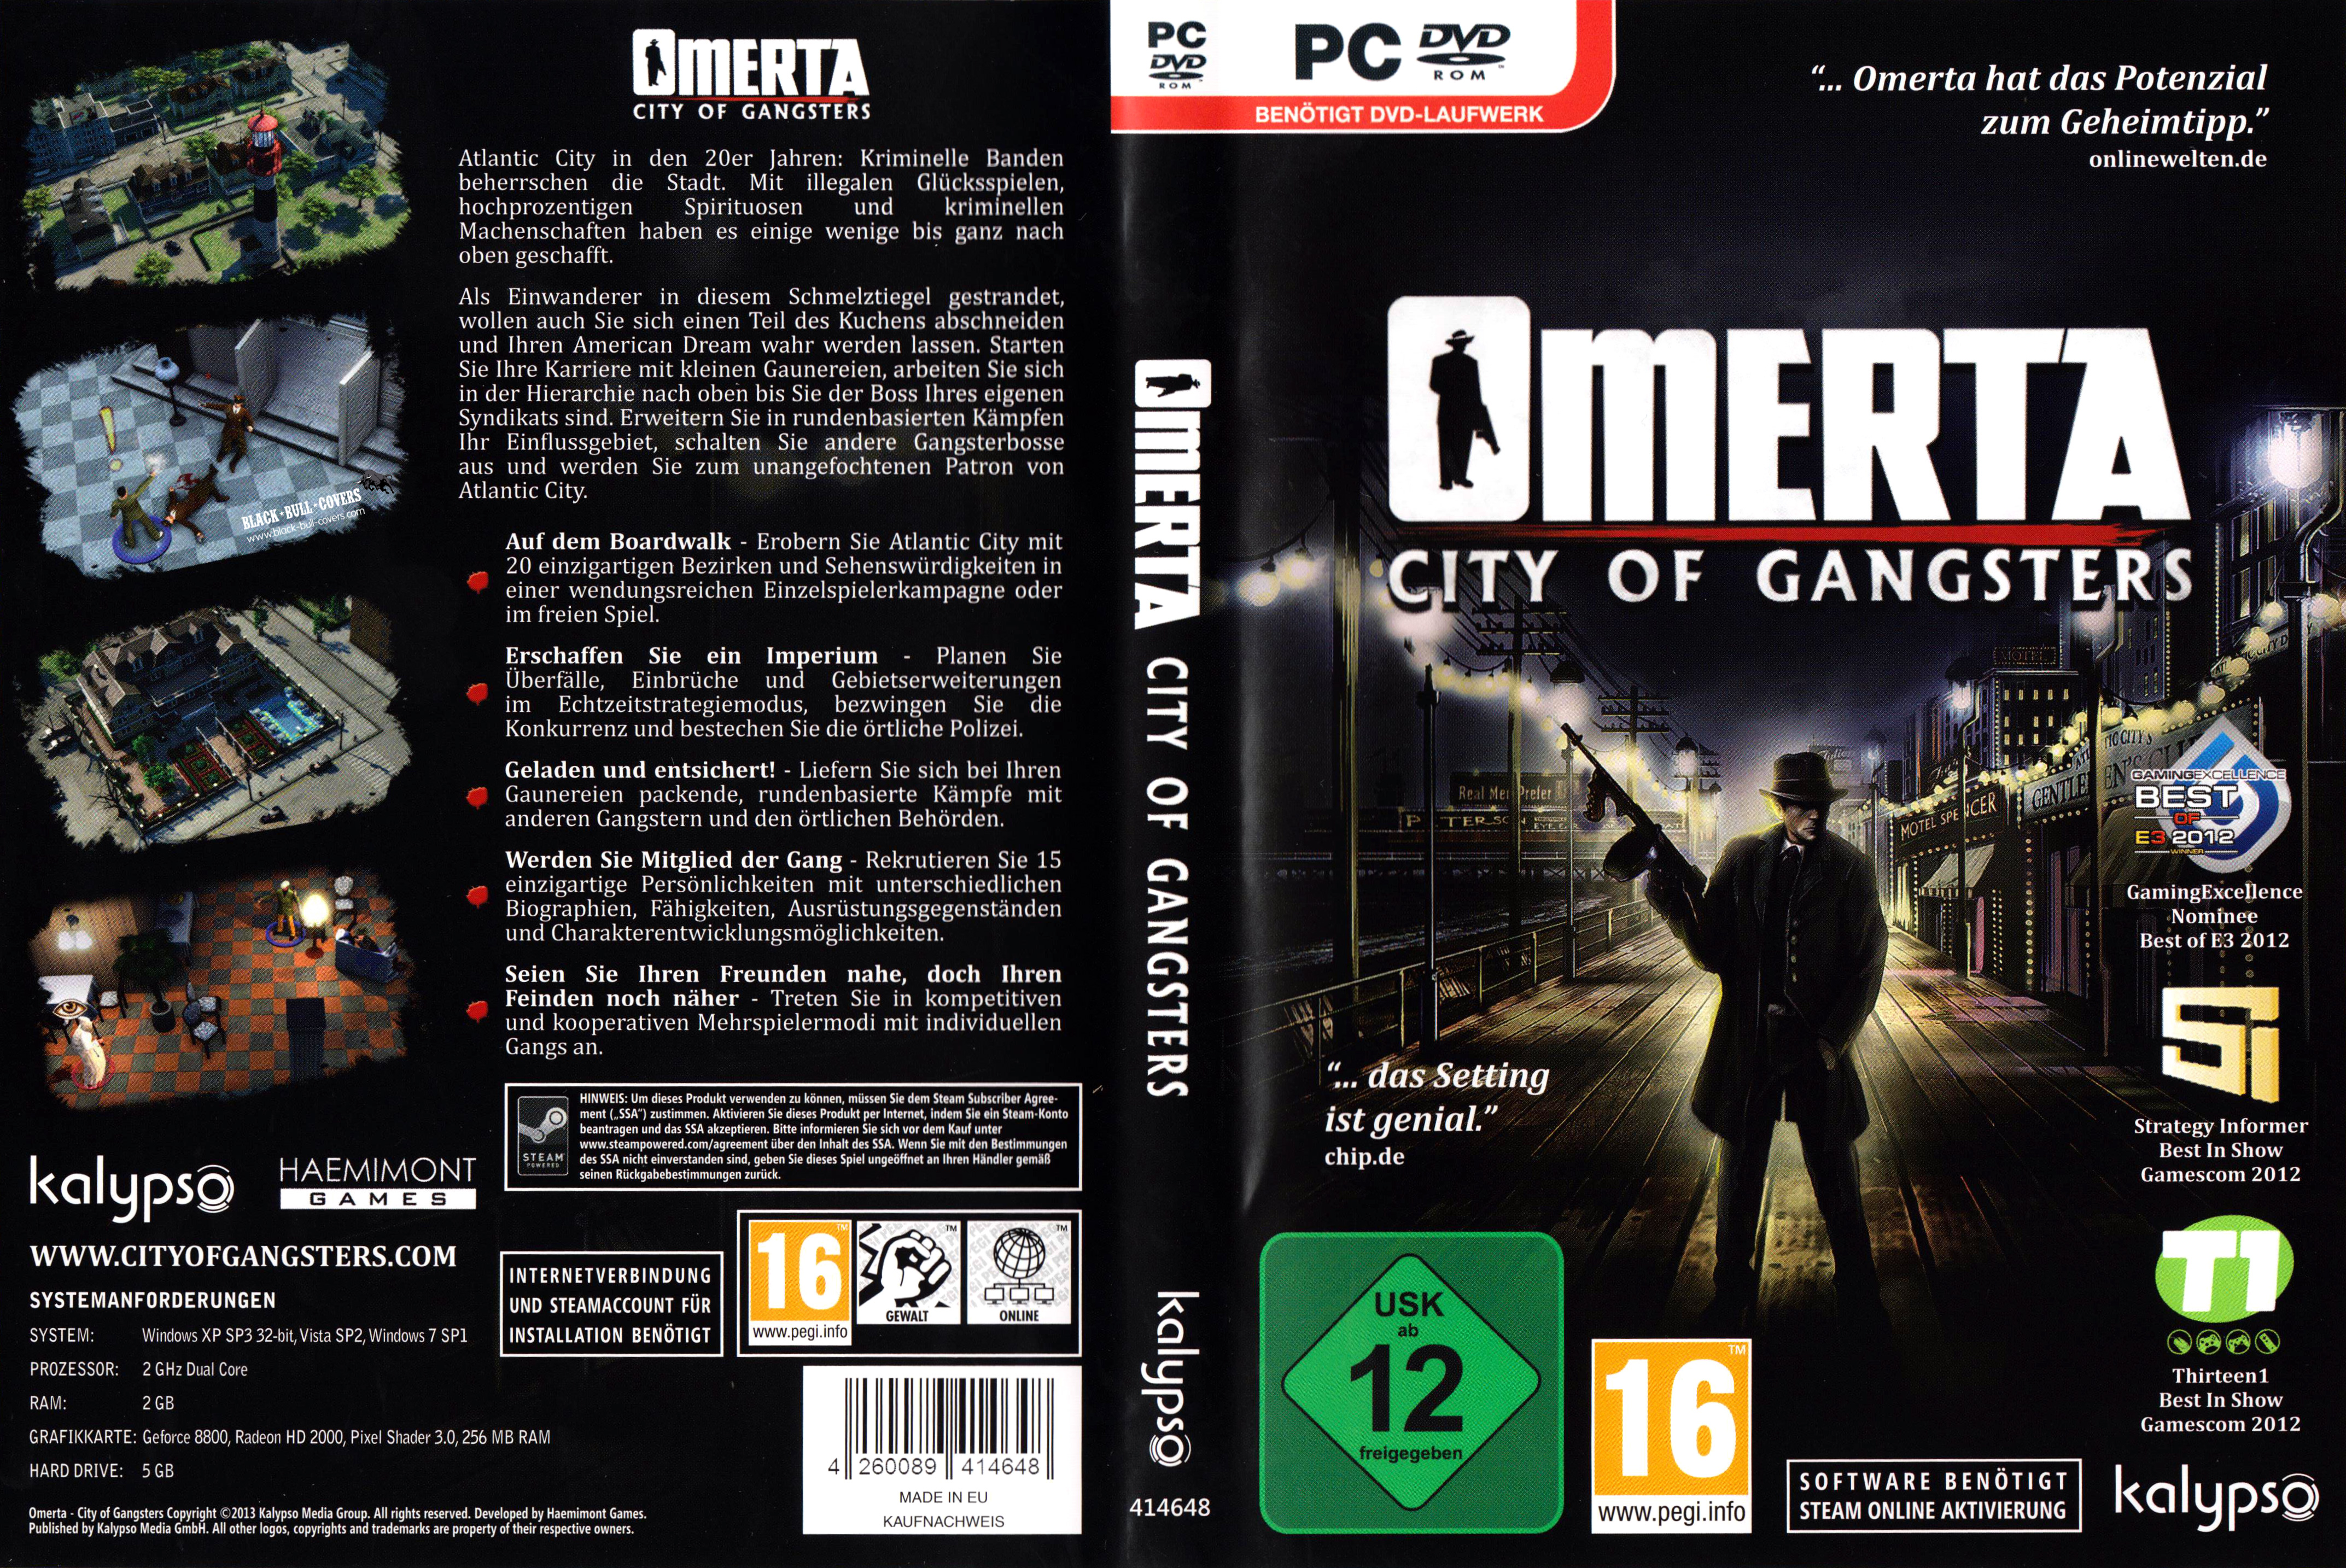 Omerta City of Gangsters | PC Covers | Cover Century | Over